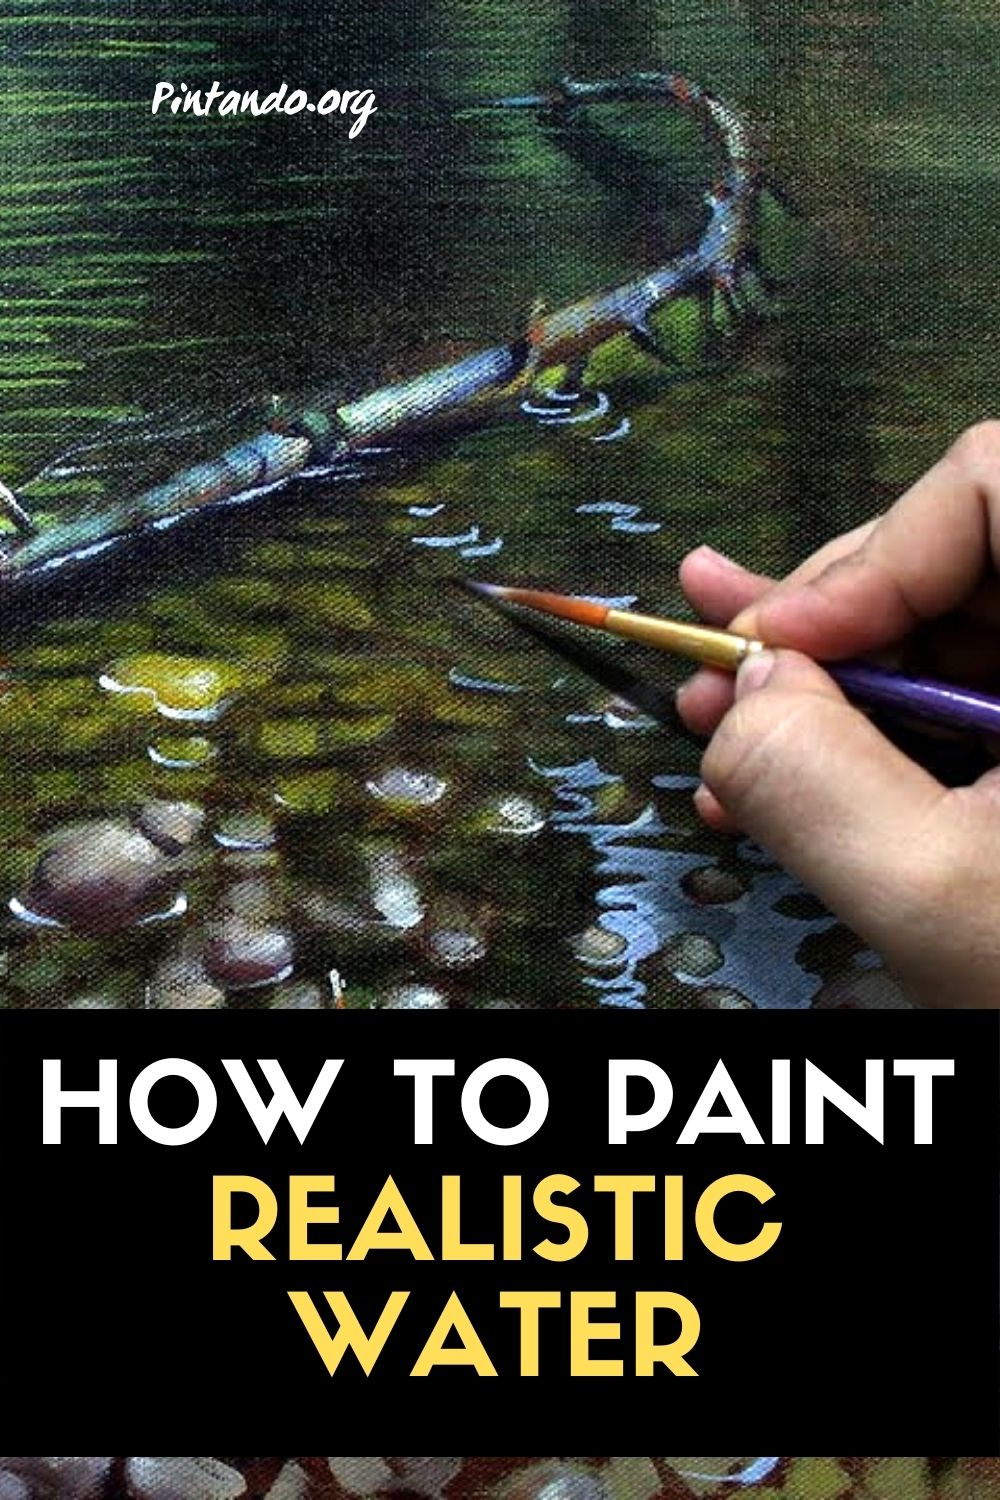 How to paint realistic water